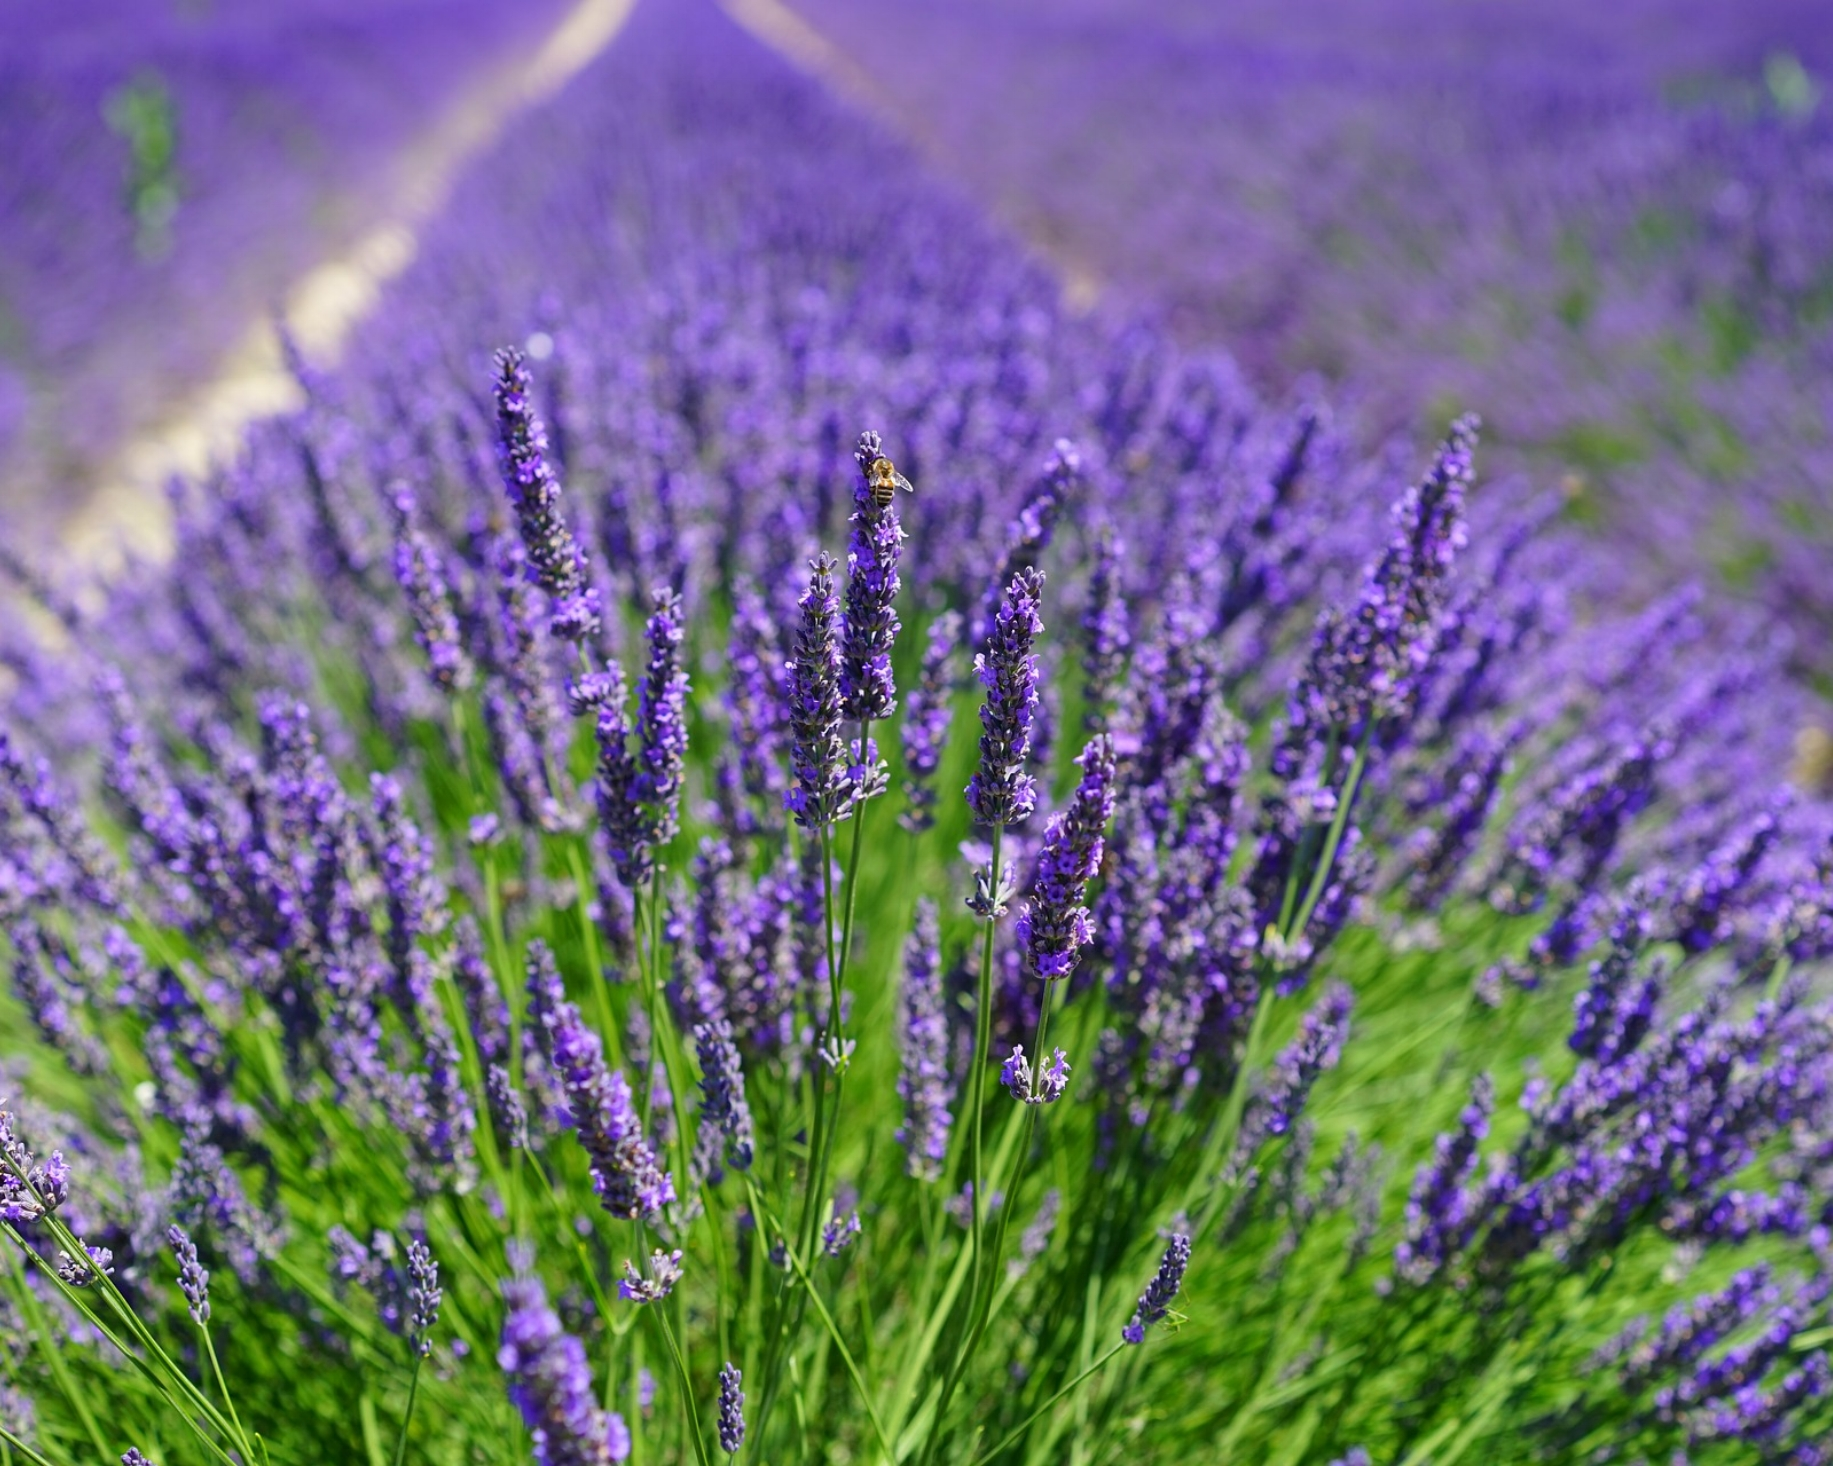 Lavender: perennial - Pollinators: Bees, butterfliesBeneficals: Ladybugs and lacewingsCompanion plants for: Cabbage and cauliflowerEdible parts: Read here about culinary lavender.Blooms: June-AugustSeed or transplant: TransplantsAdditional info: Use a lavender spray on your pillow for better sleep.